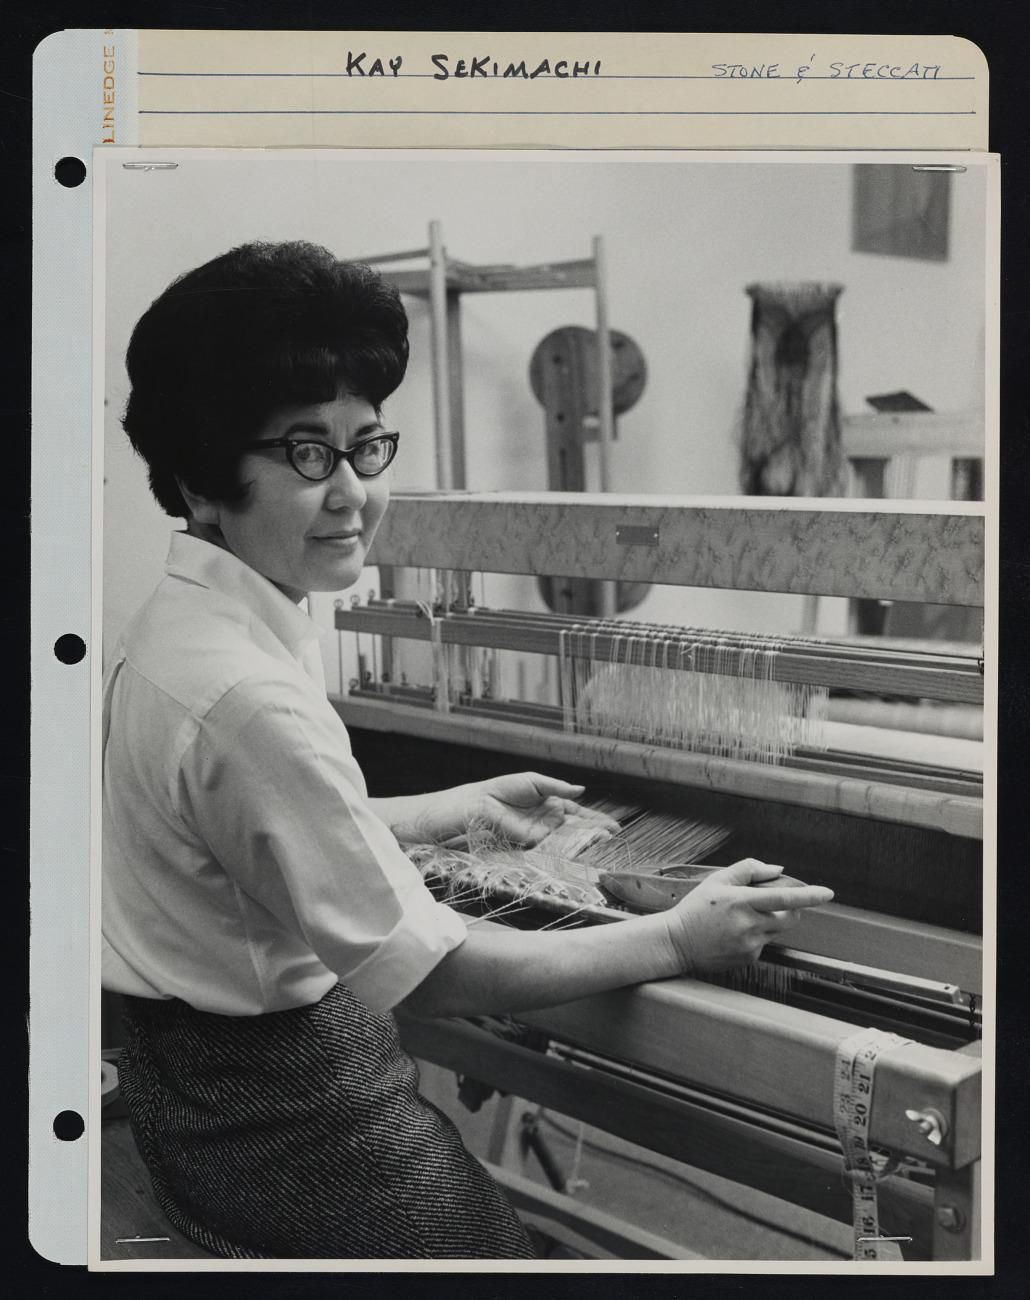 Black and white image of a woman sitting at a loom, looking at the camera